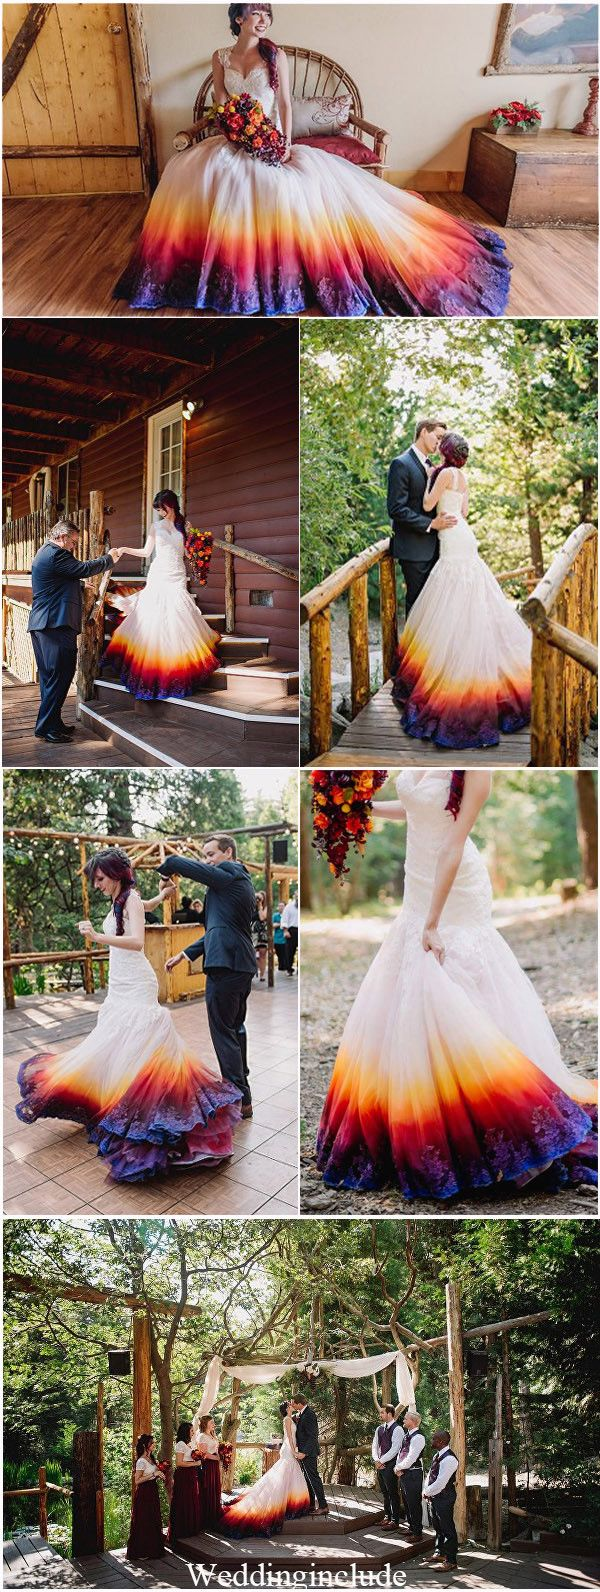 Airbrushed wedding dress  This Airbrushed Wedding Dress Is Going To Take Over Your Pinterest